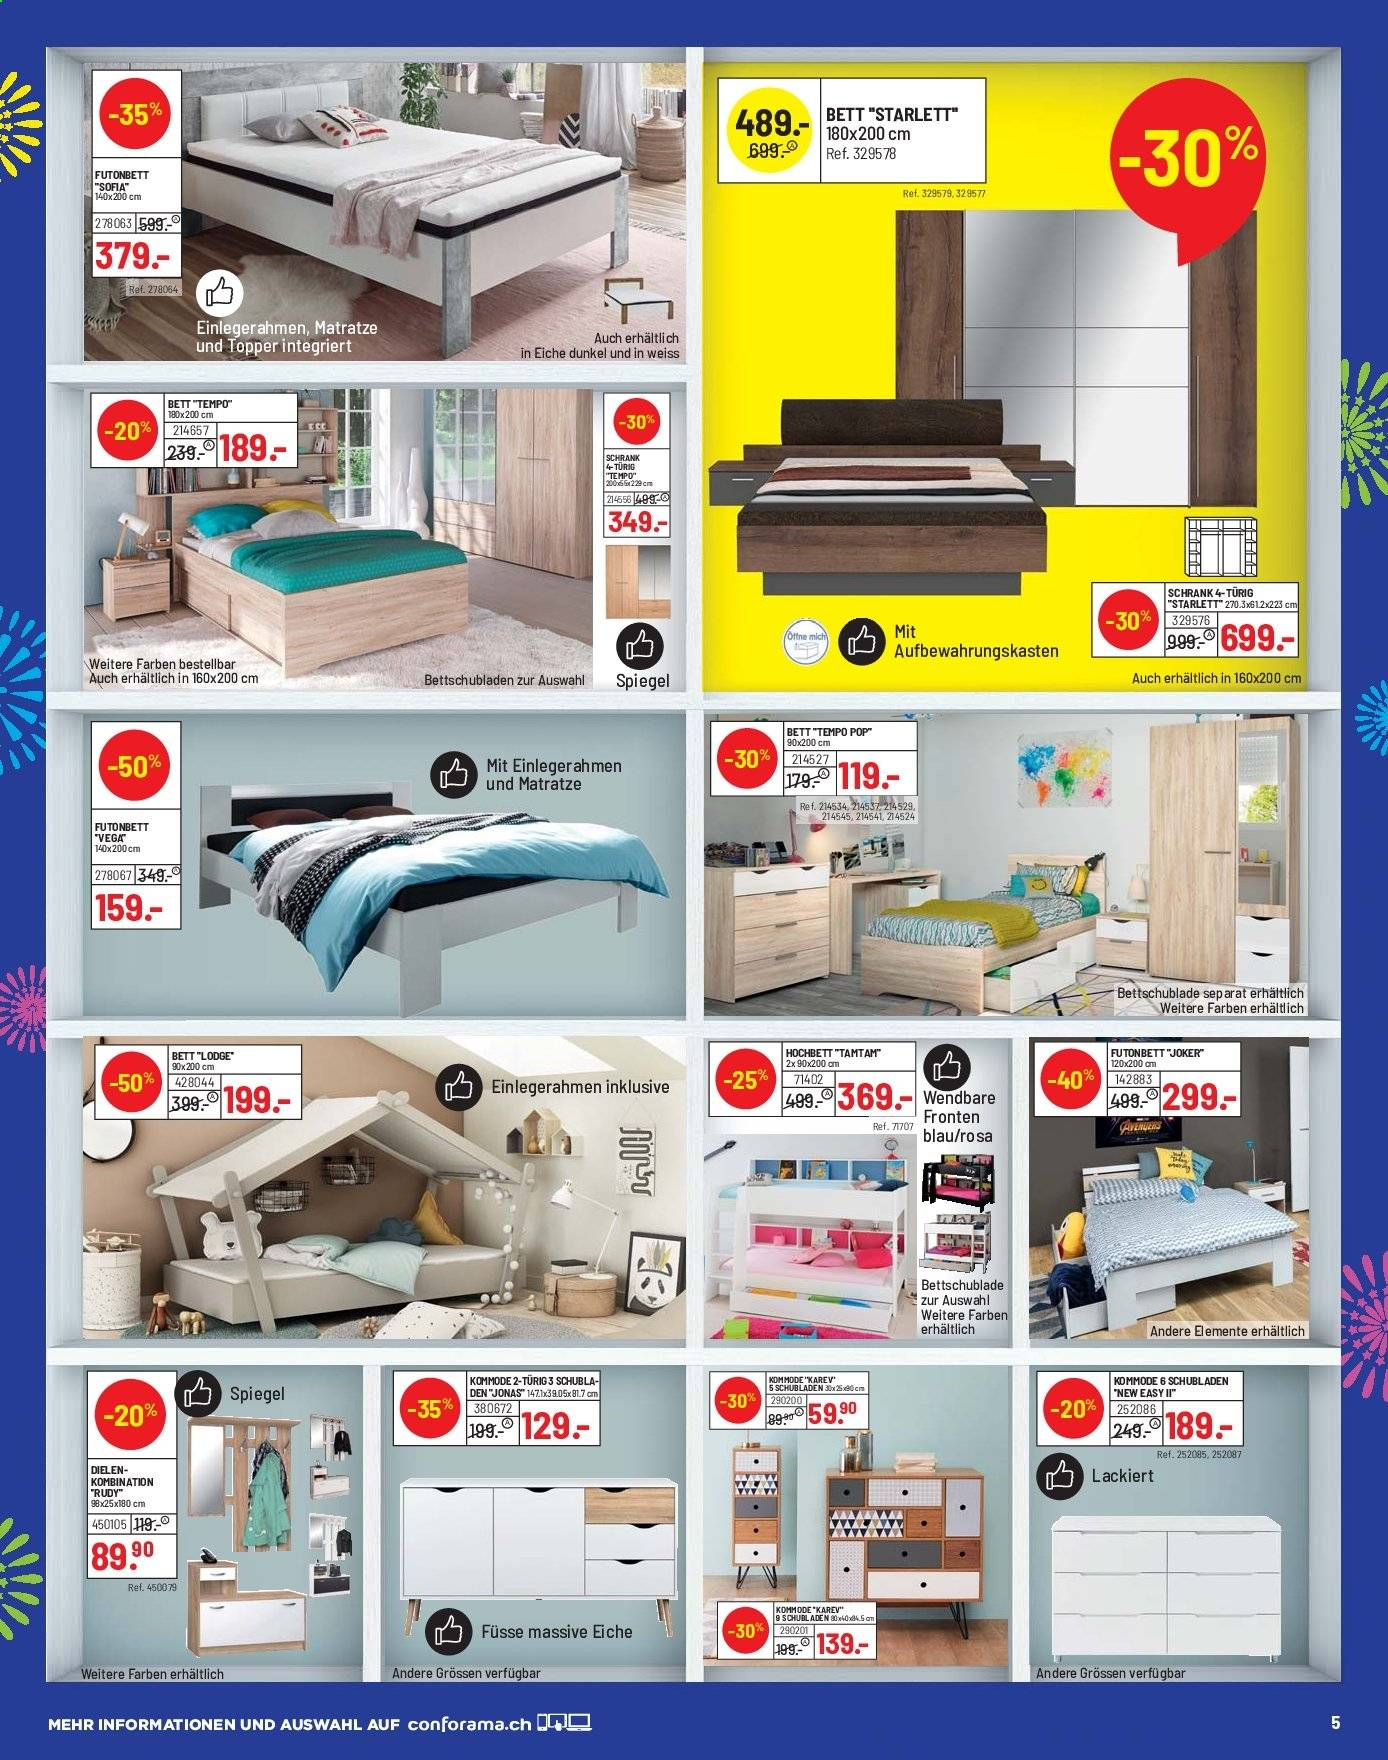 Catalogue Conforama 10.9.2019 - 23.9.2019 | Rabatt-kompass.ch